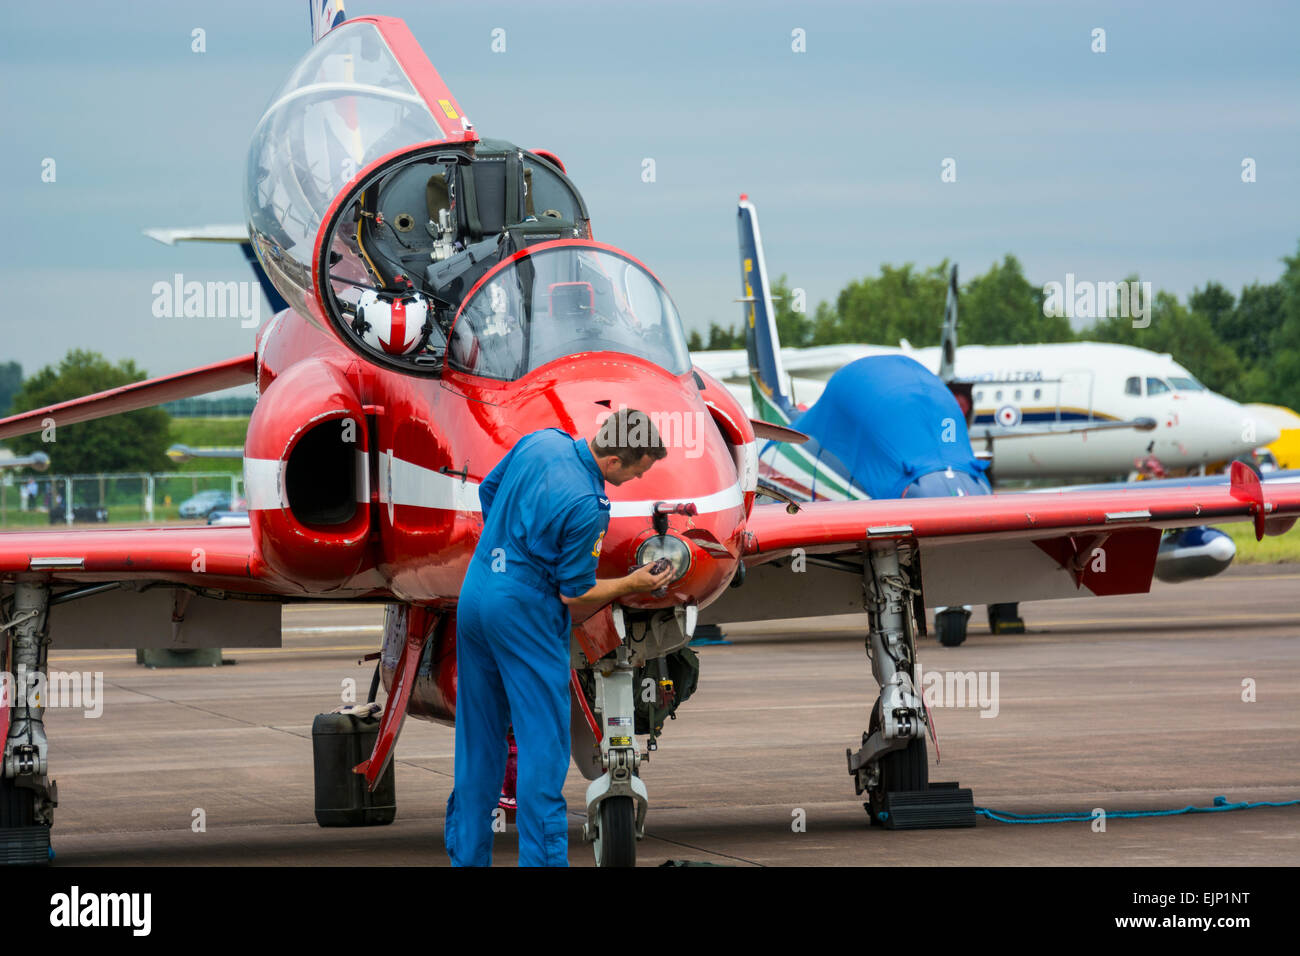 Red Arrows Hawk Aircraft being cleaned and prepared at RIAT 2014 by a member of the Blues - Stock Image